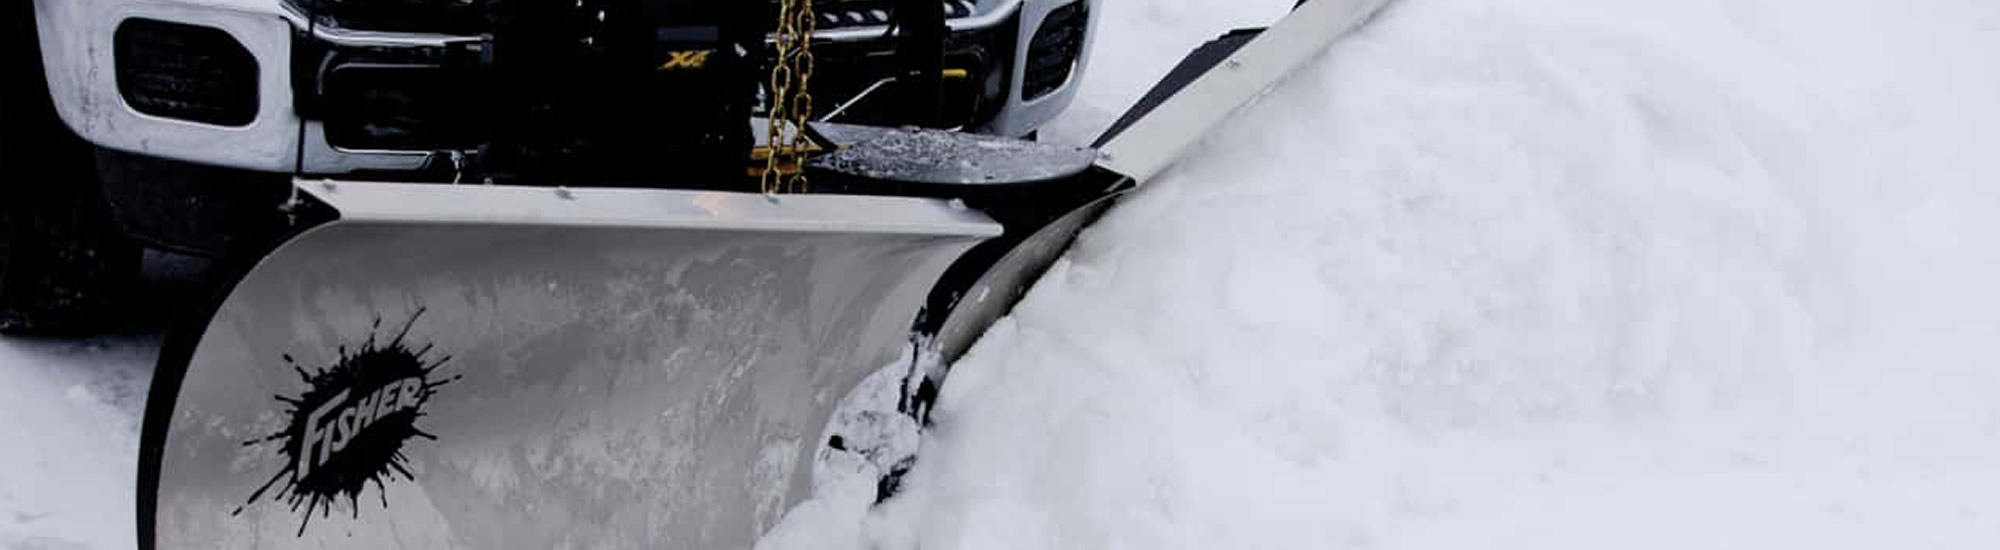 Header Image - castlefordexcavating-snow-removal-banner-1-1531165092.jpg